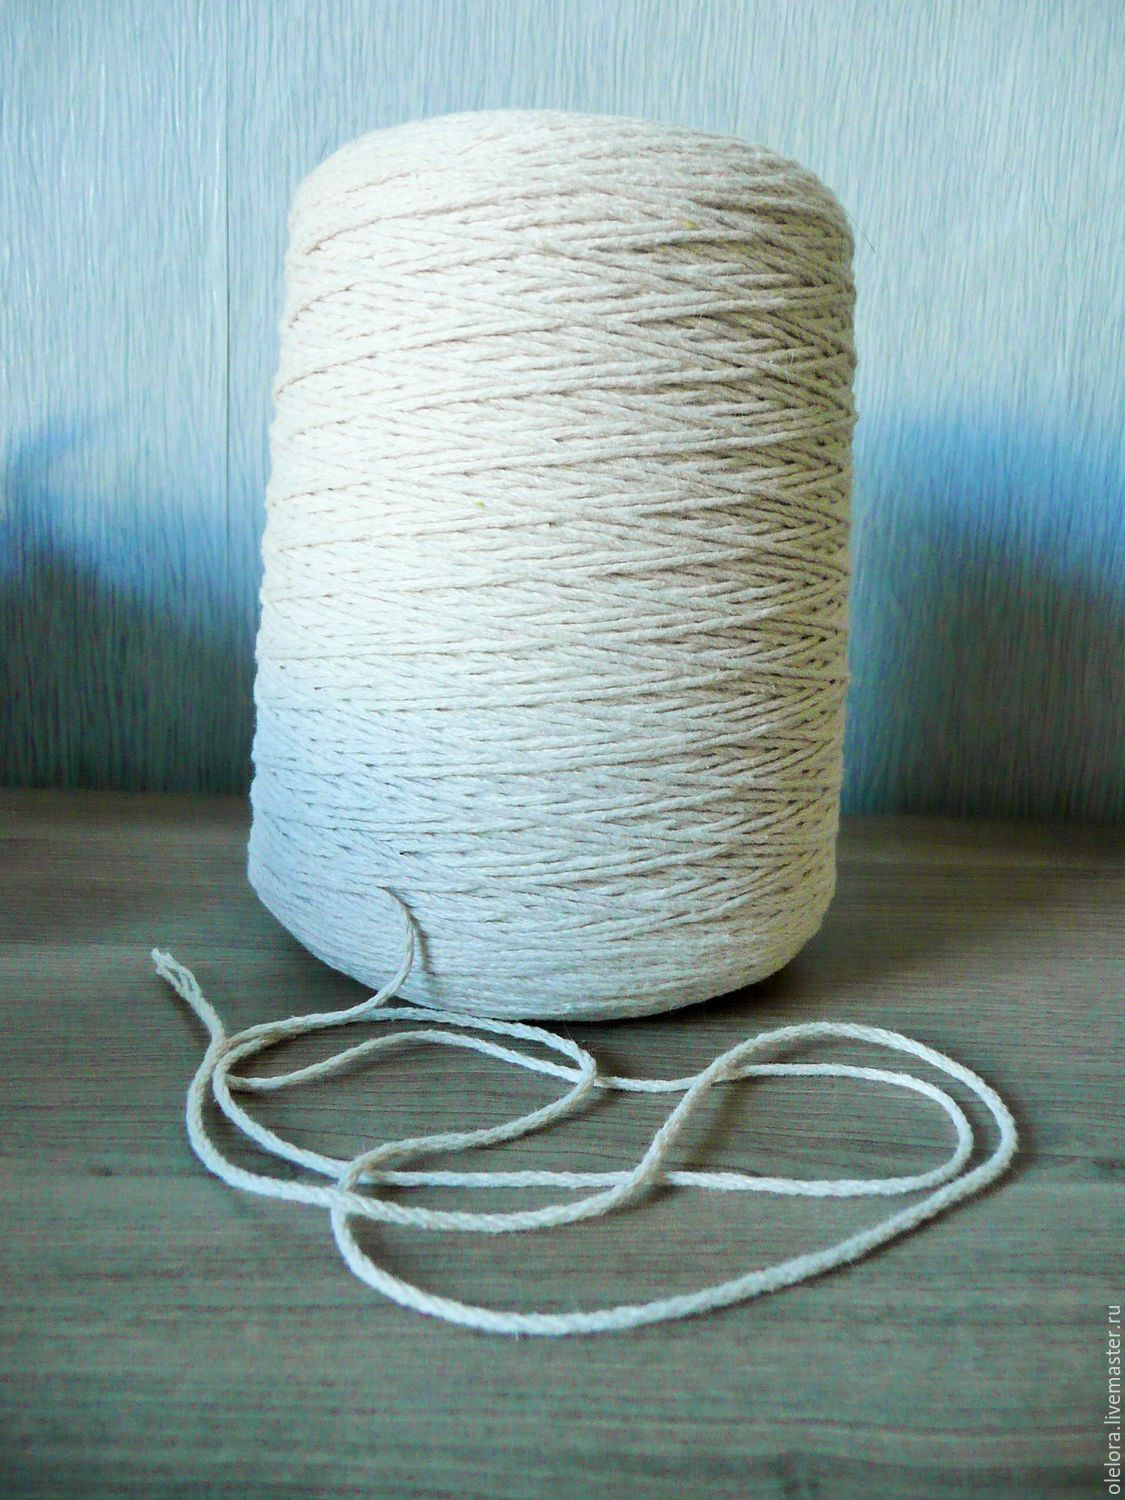 The thick cotton wick for candles